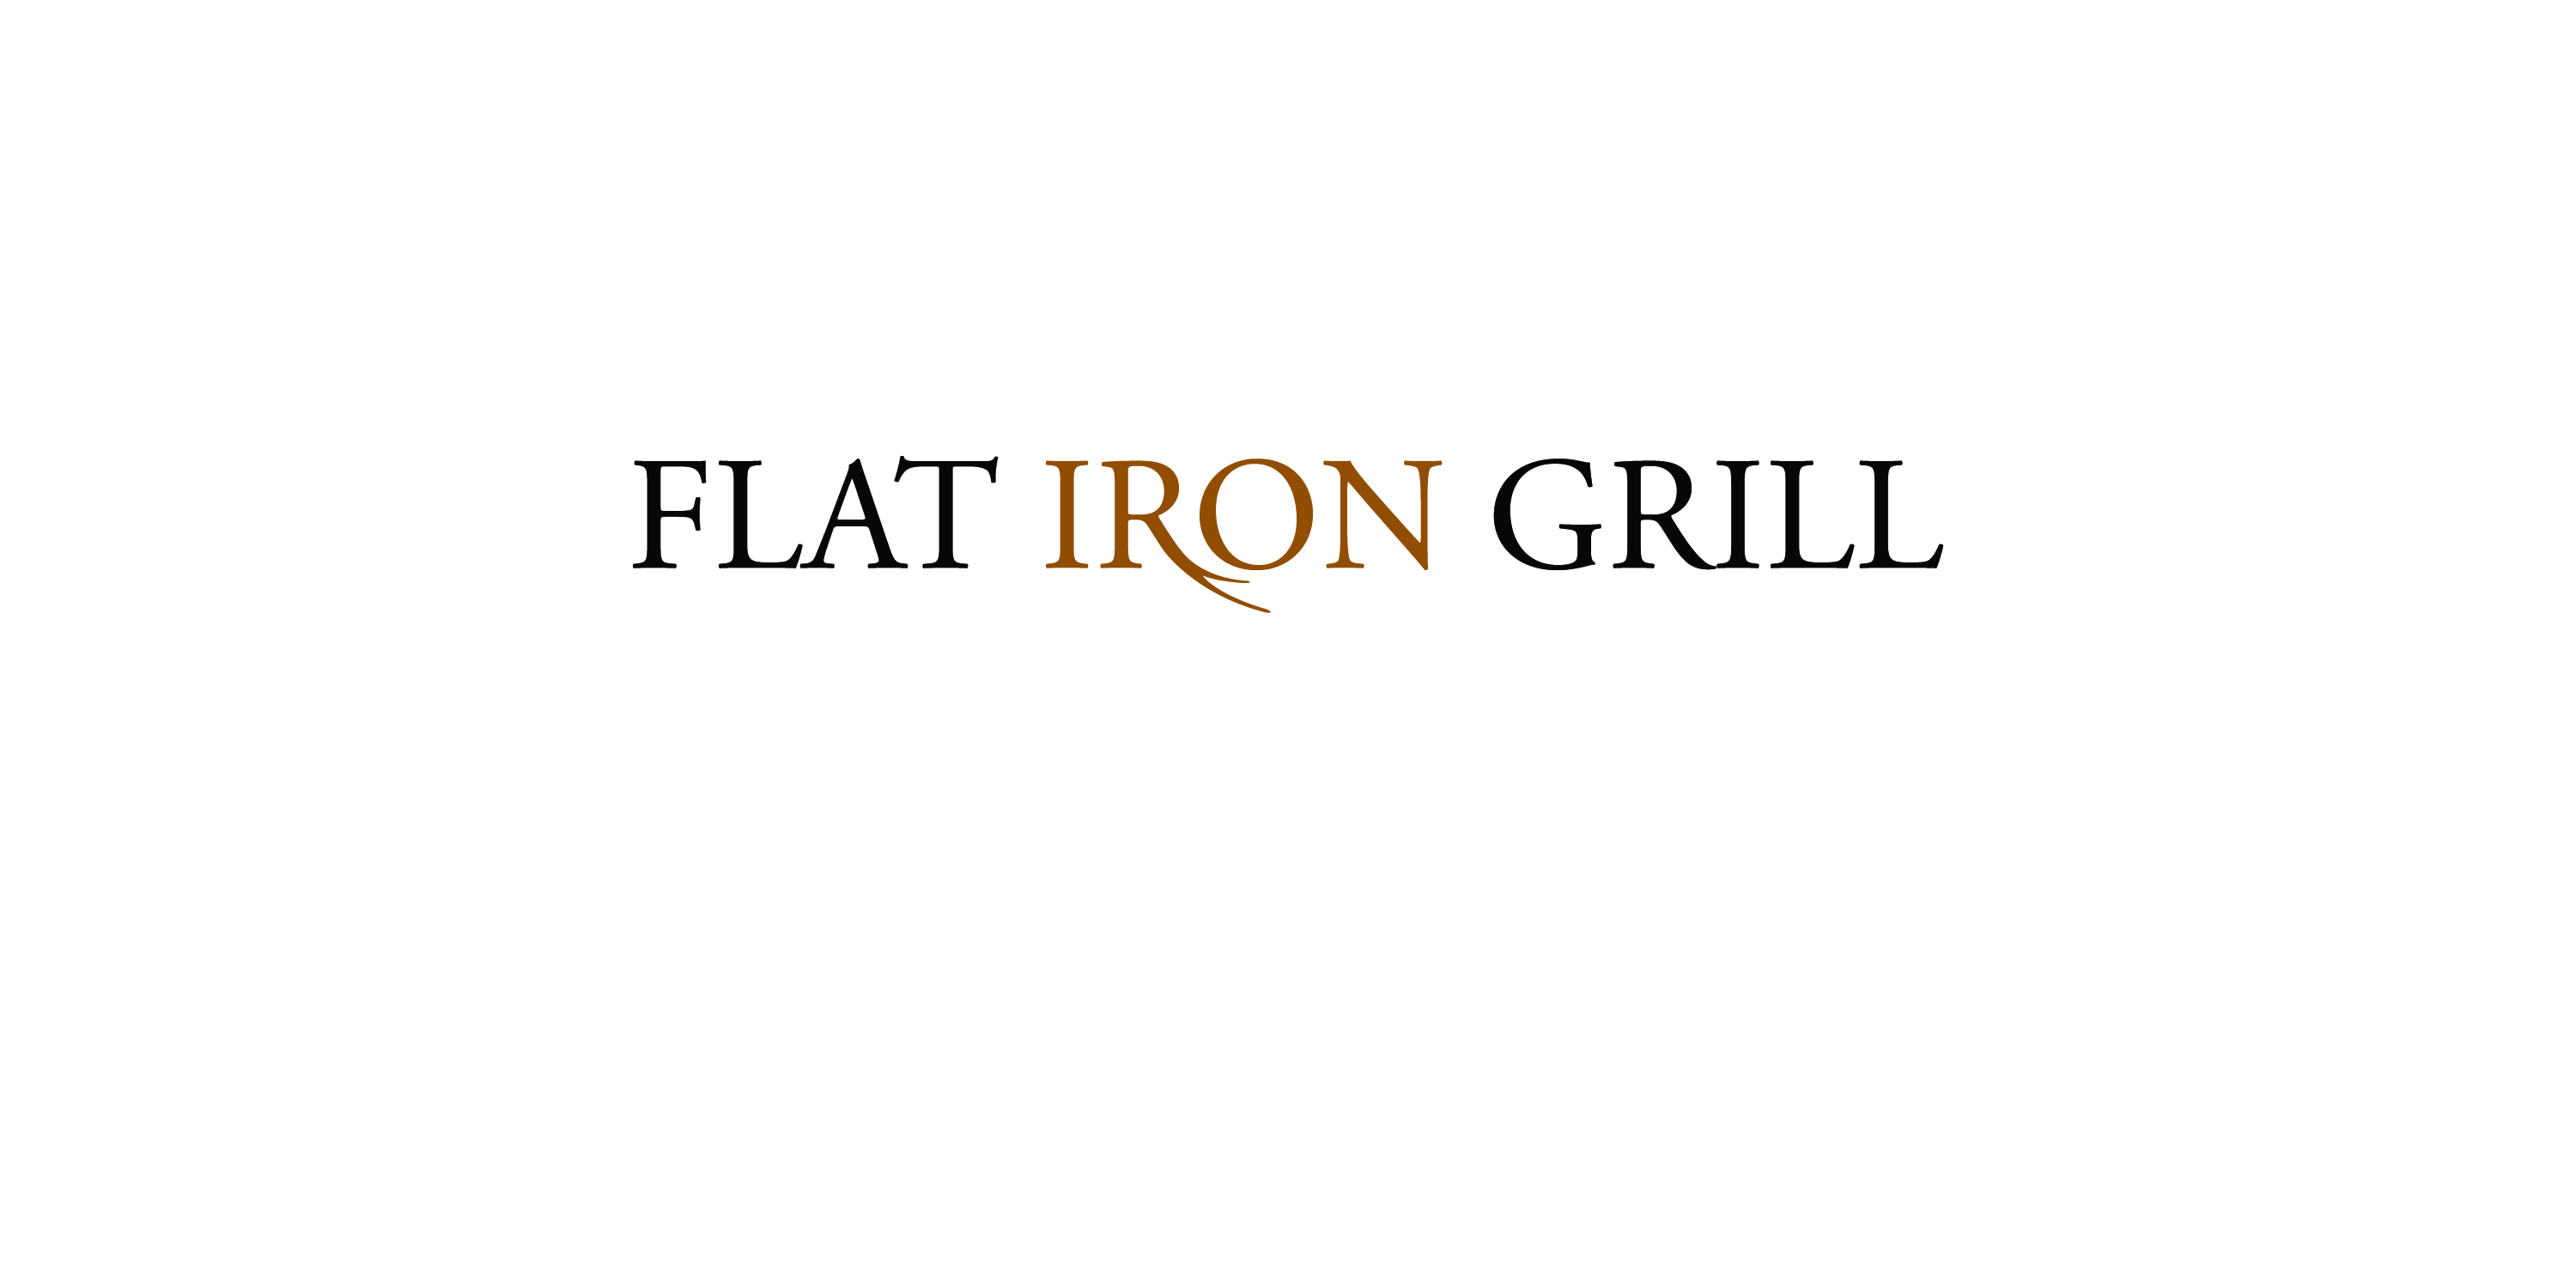 The Flat Iron Grill's Logo